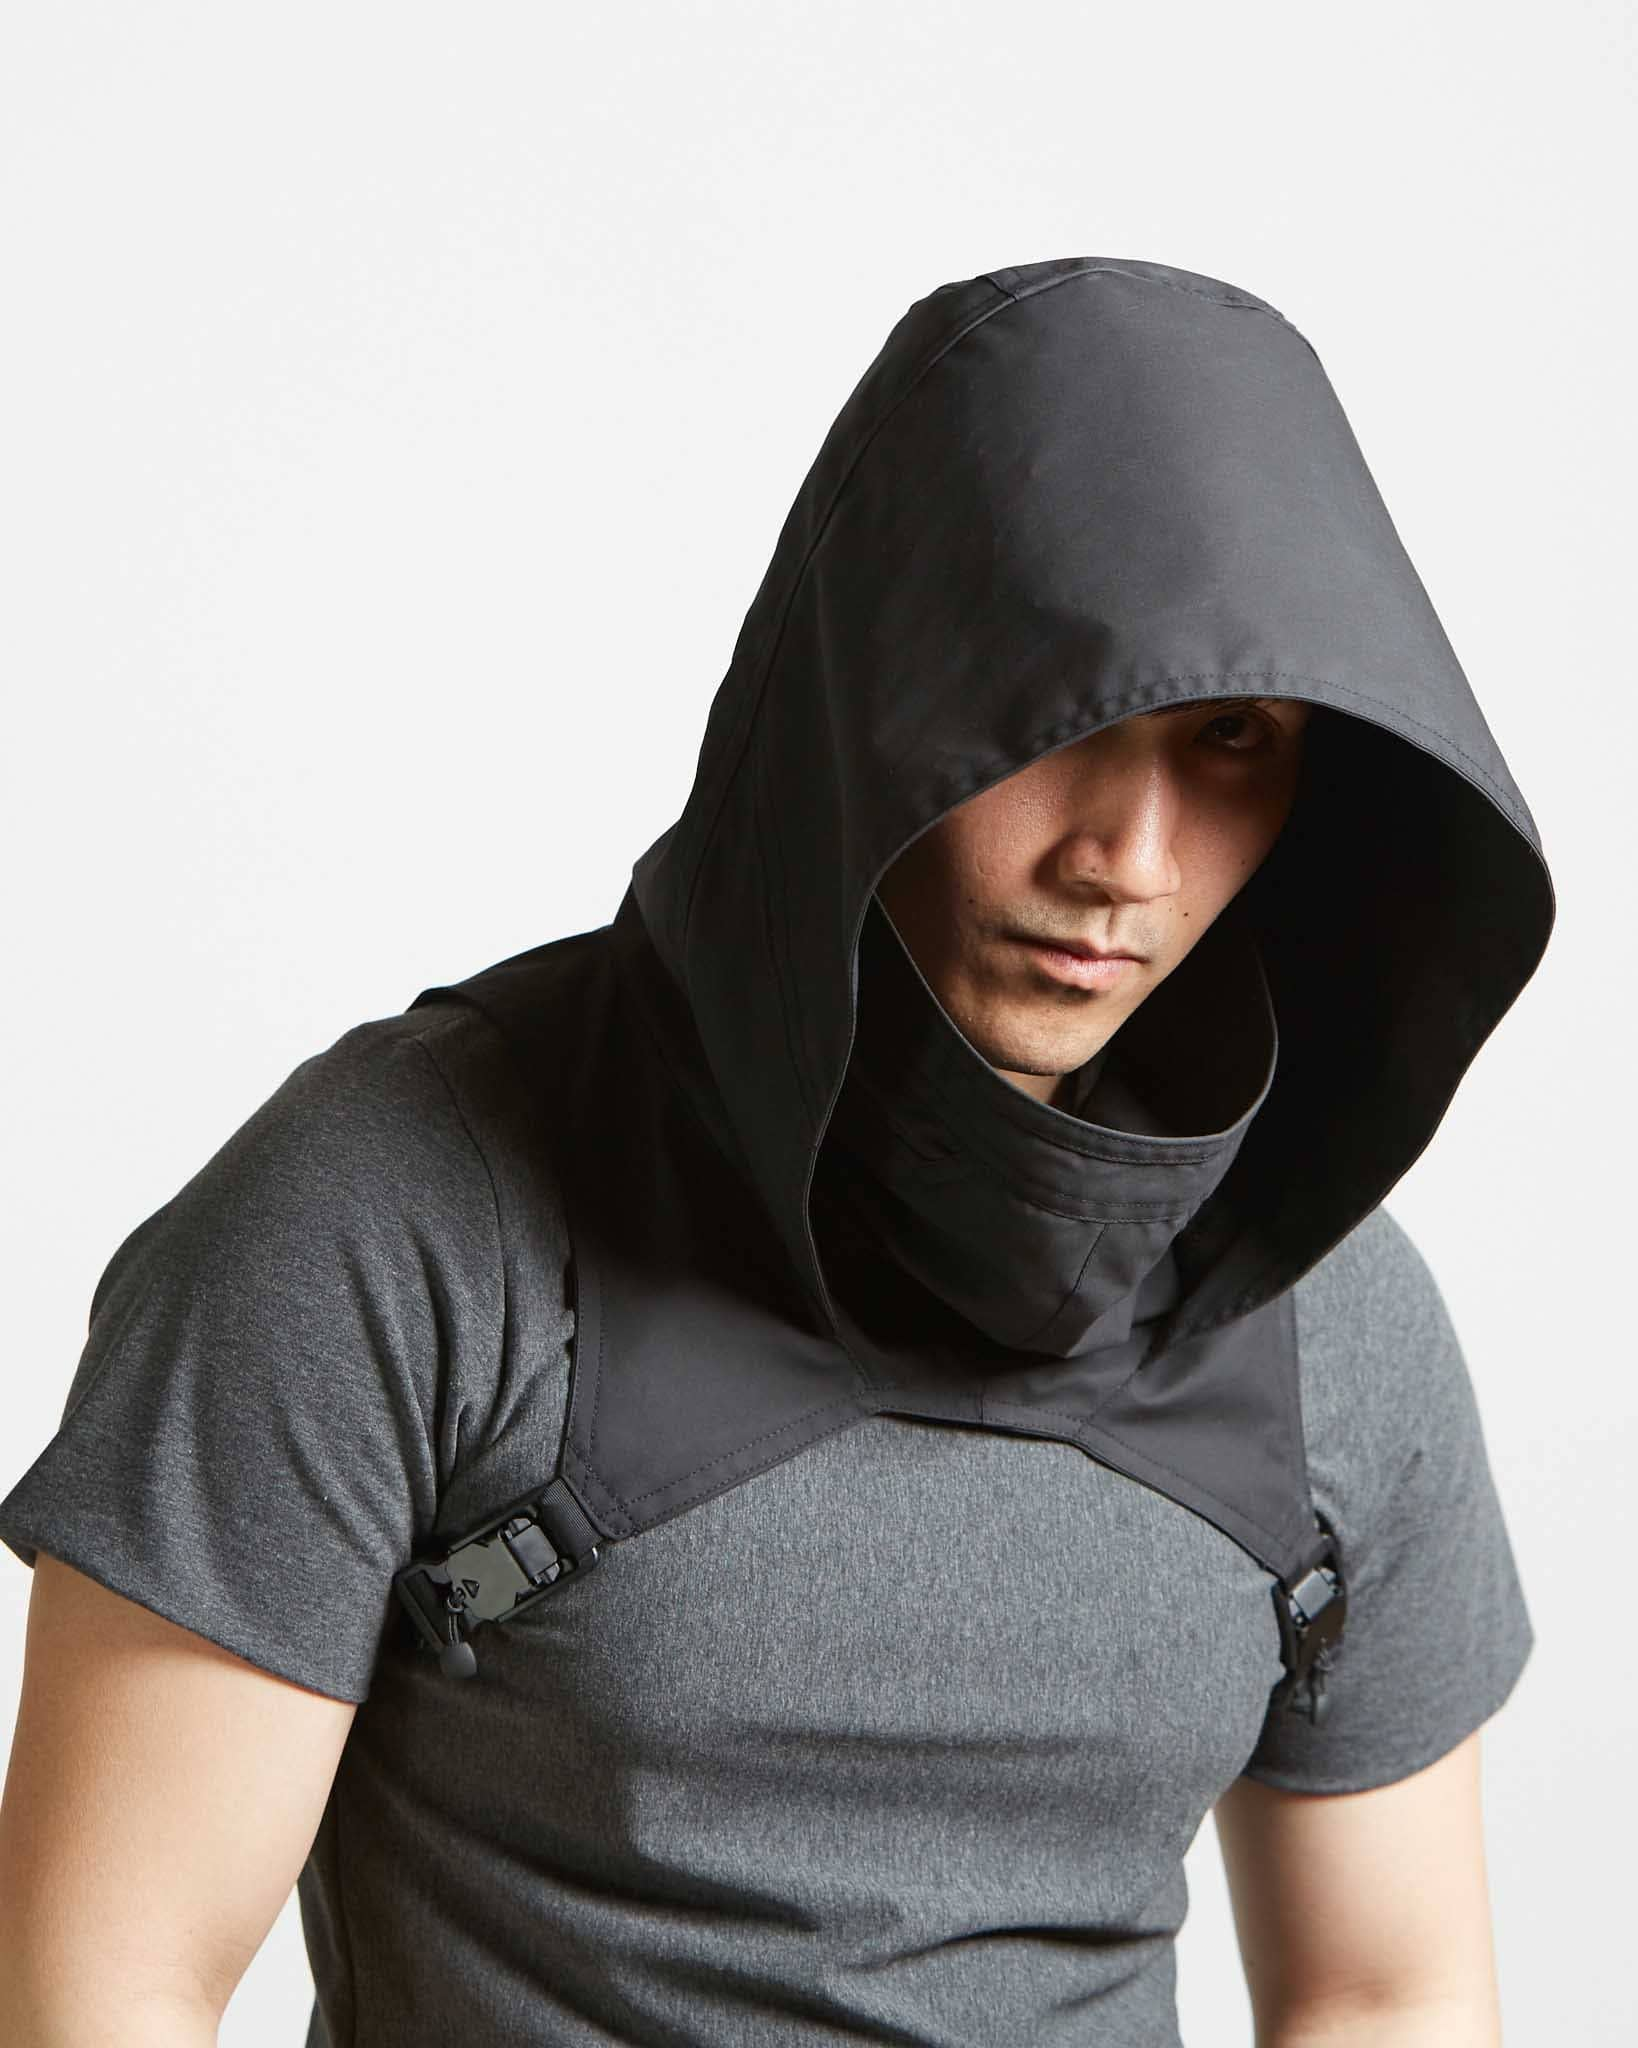 handmade modern adjustable hood for men and women